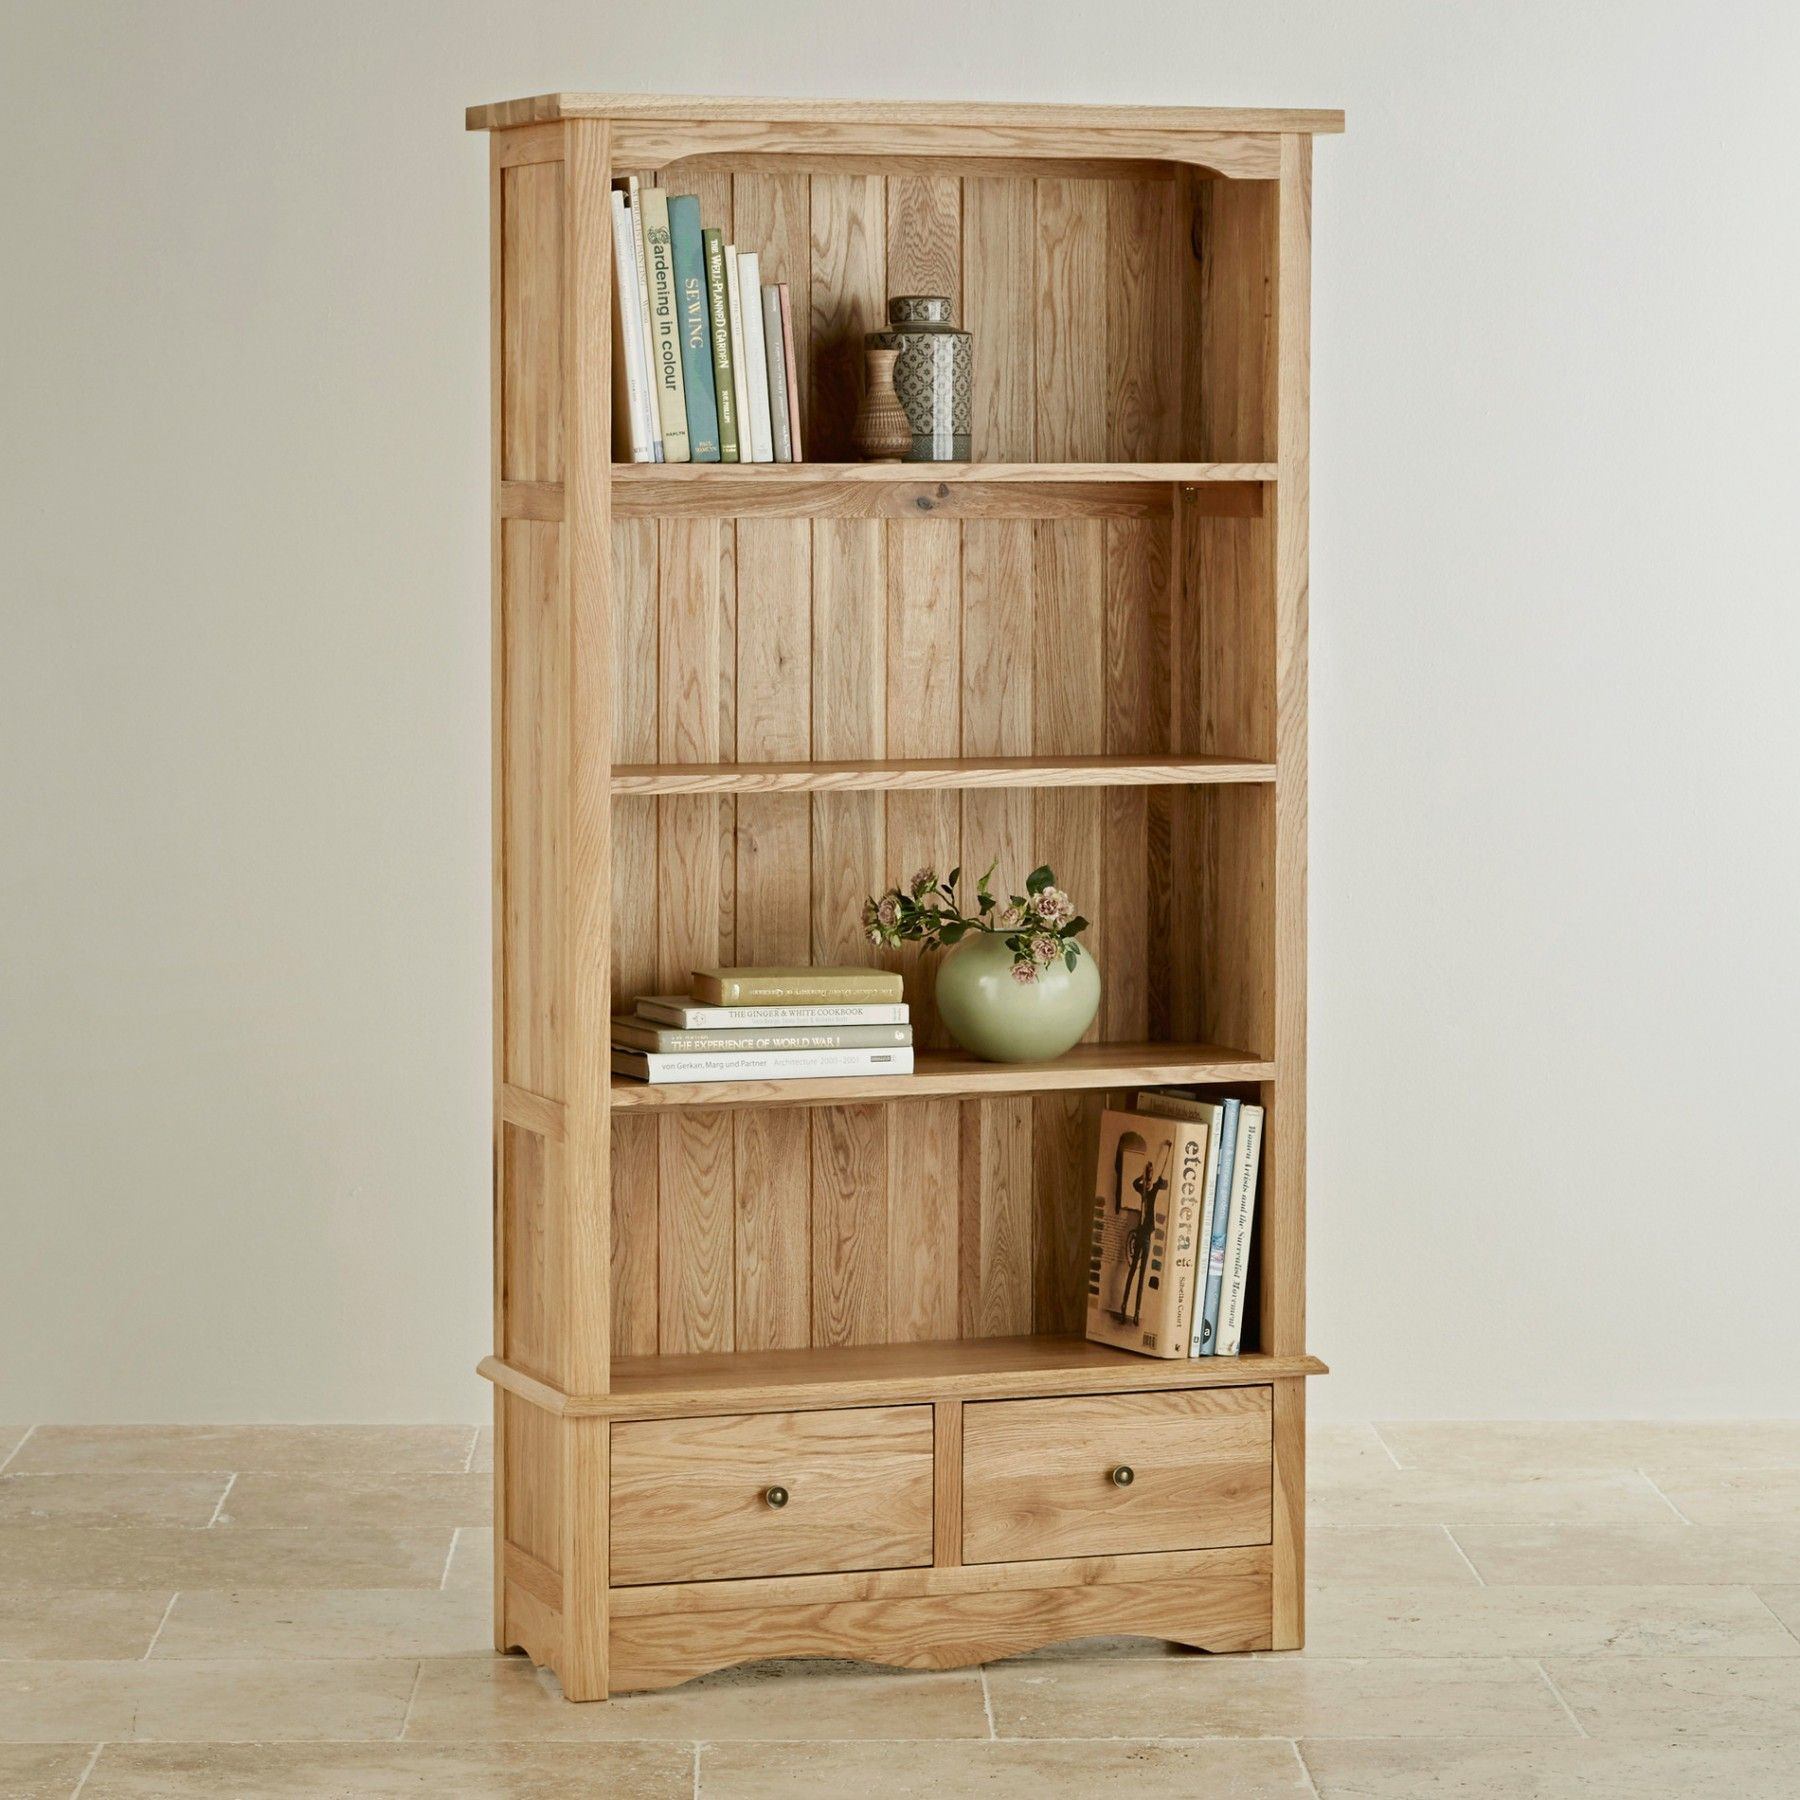 The Cairo Natural Solid Oak Tall Bookcase Features The Understated